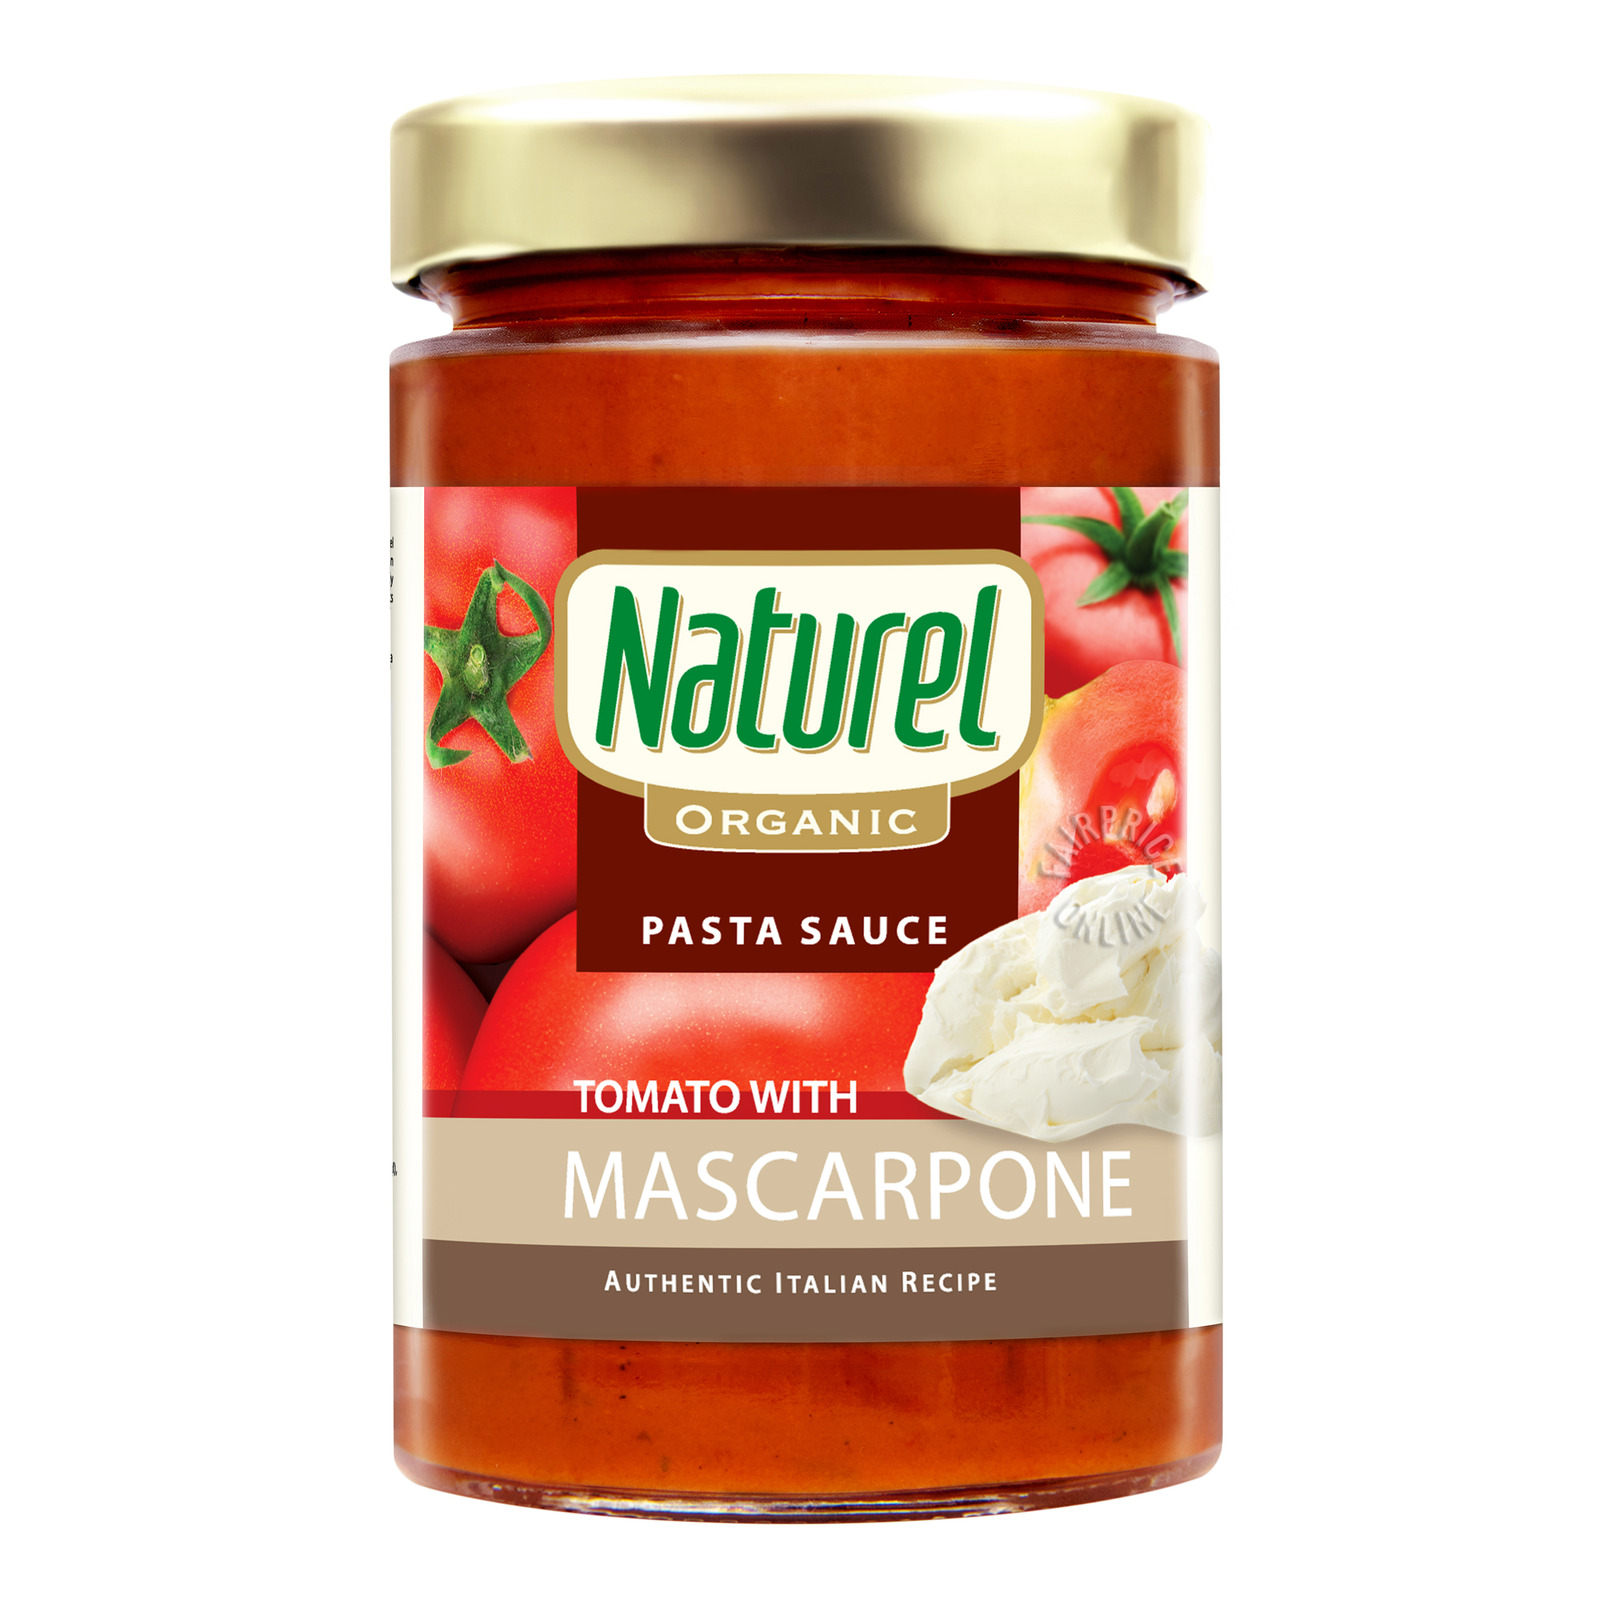 Naturel Organic Pasta Sauce - Tomato with Mascarpone